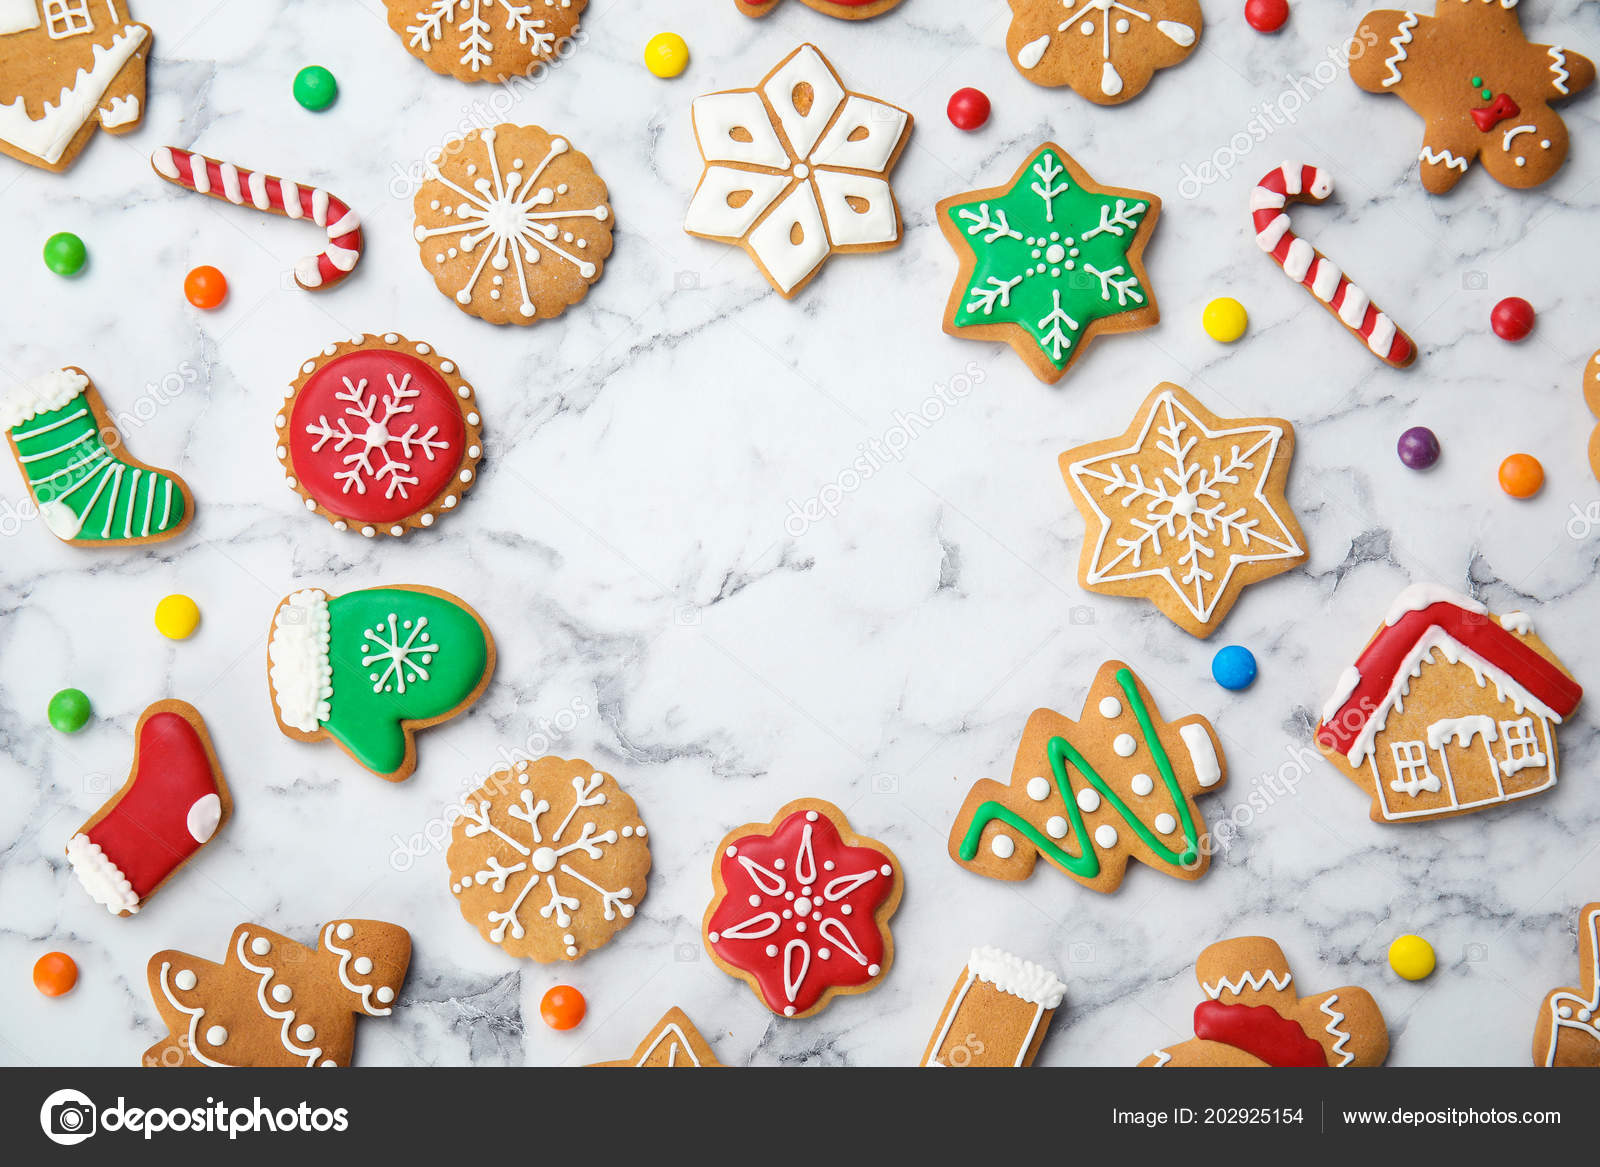 Tasty Homemade Christmas Cookies Marble Table Top View Stock Photo